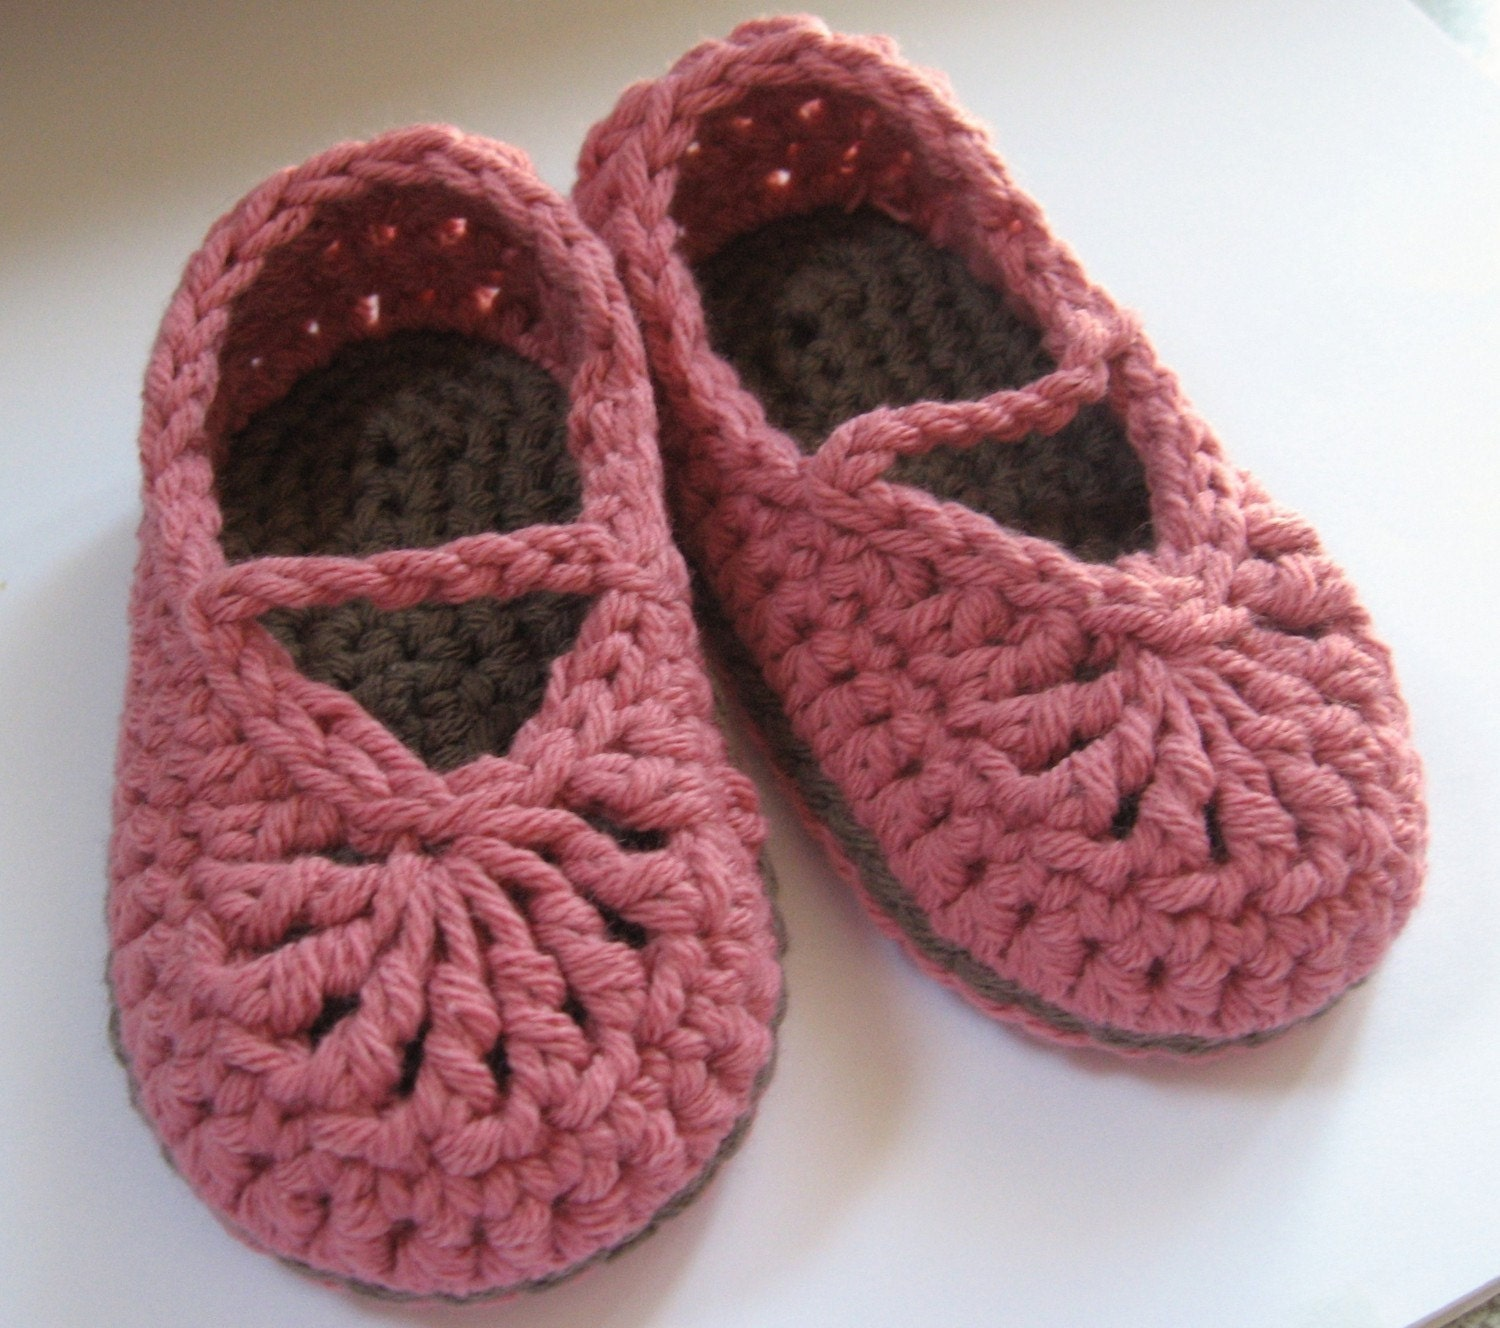 Crochet Cotton Baby Booties Pattern : Crochet Cotton Baby Booties Mary Jane Skimmers You choose Size